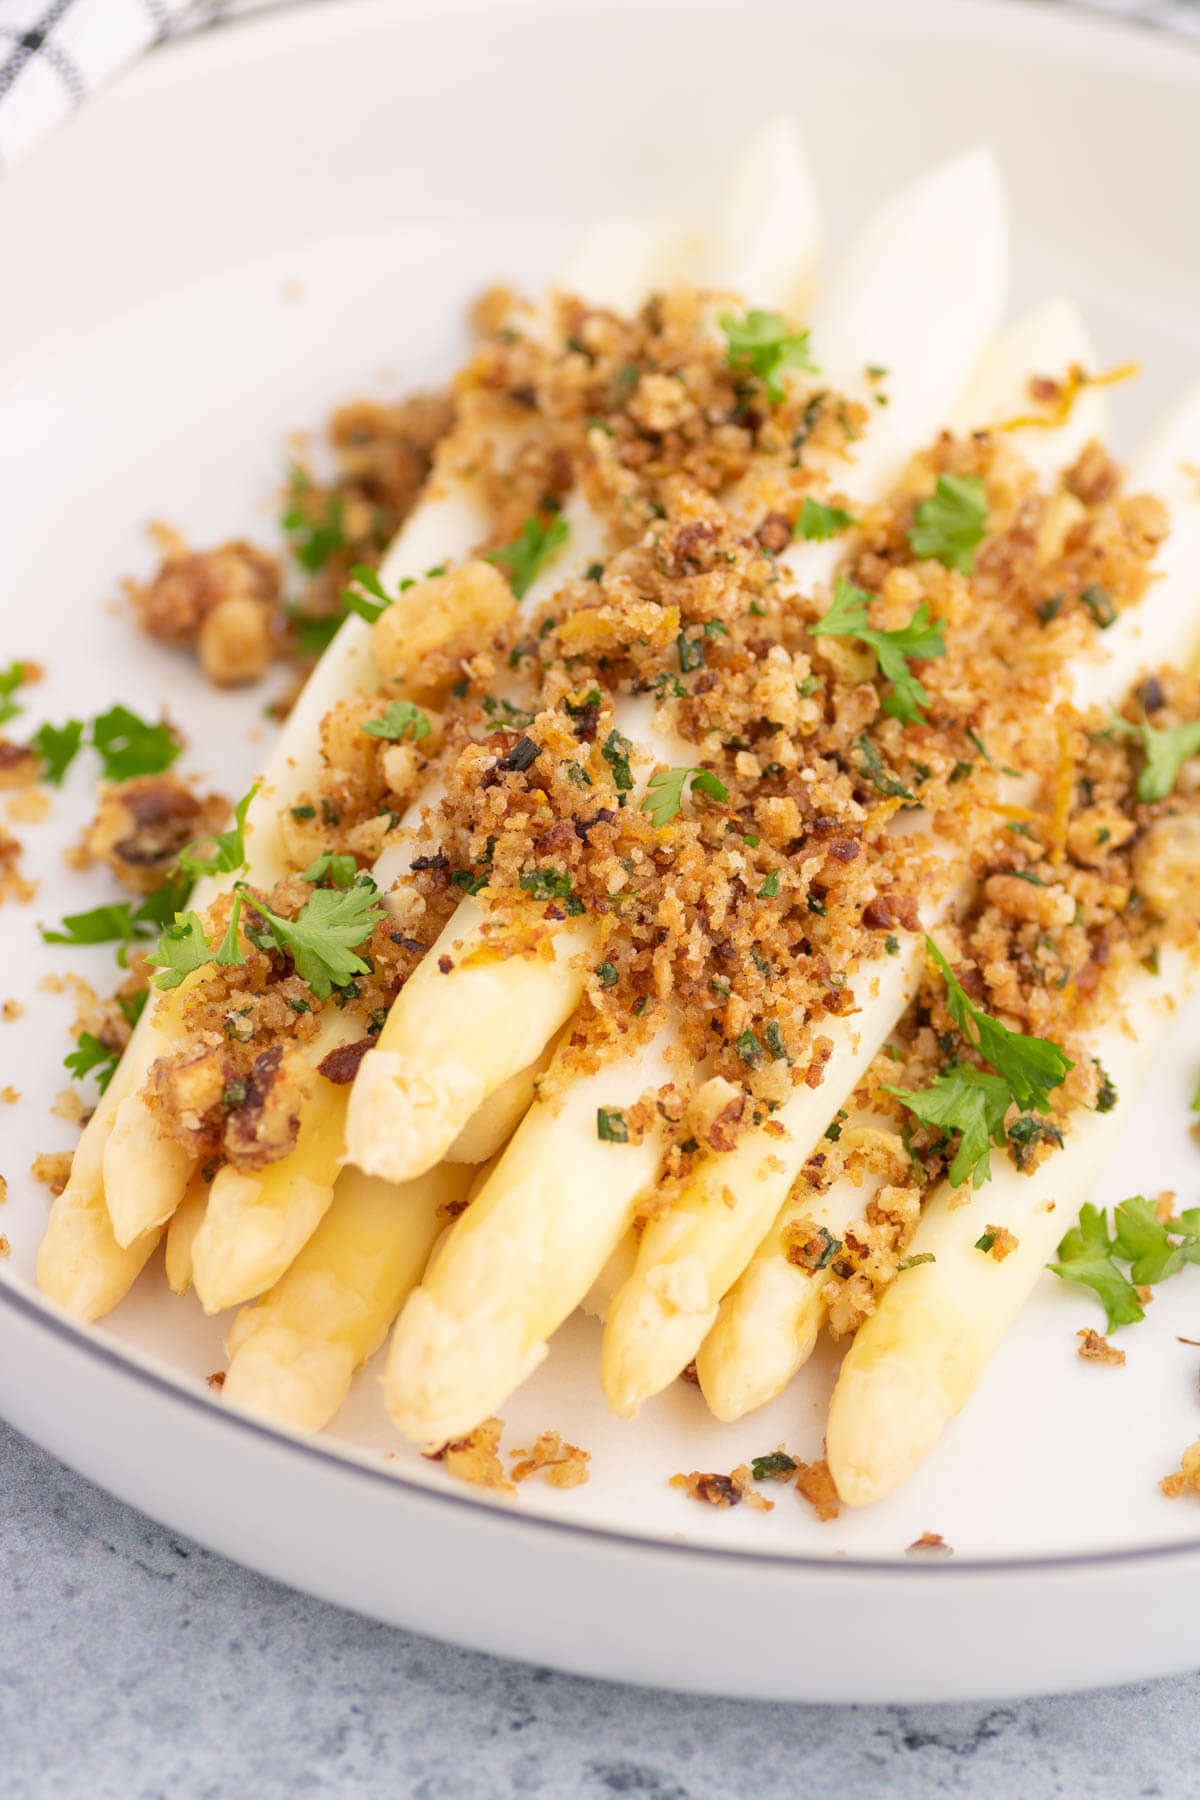 Steamed white asparagus covered in golden pangrattato and herbs.